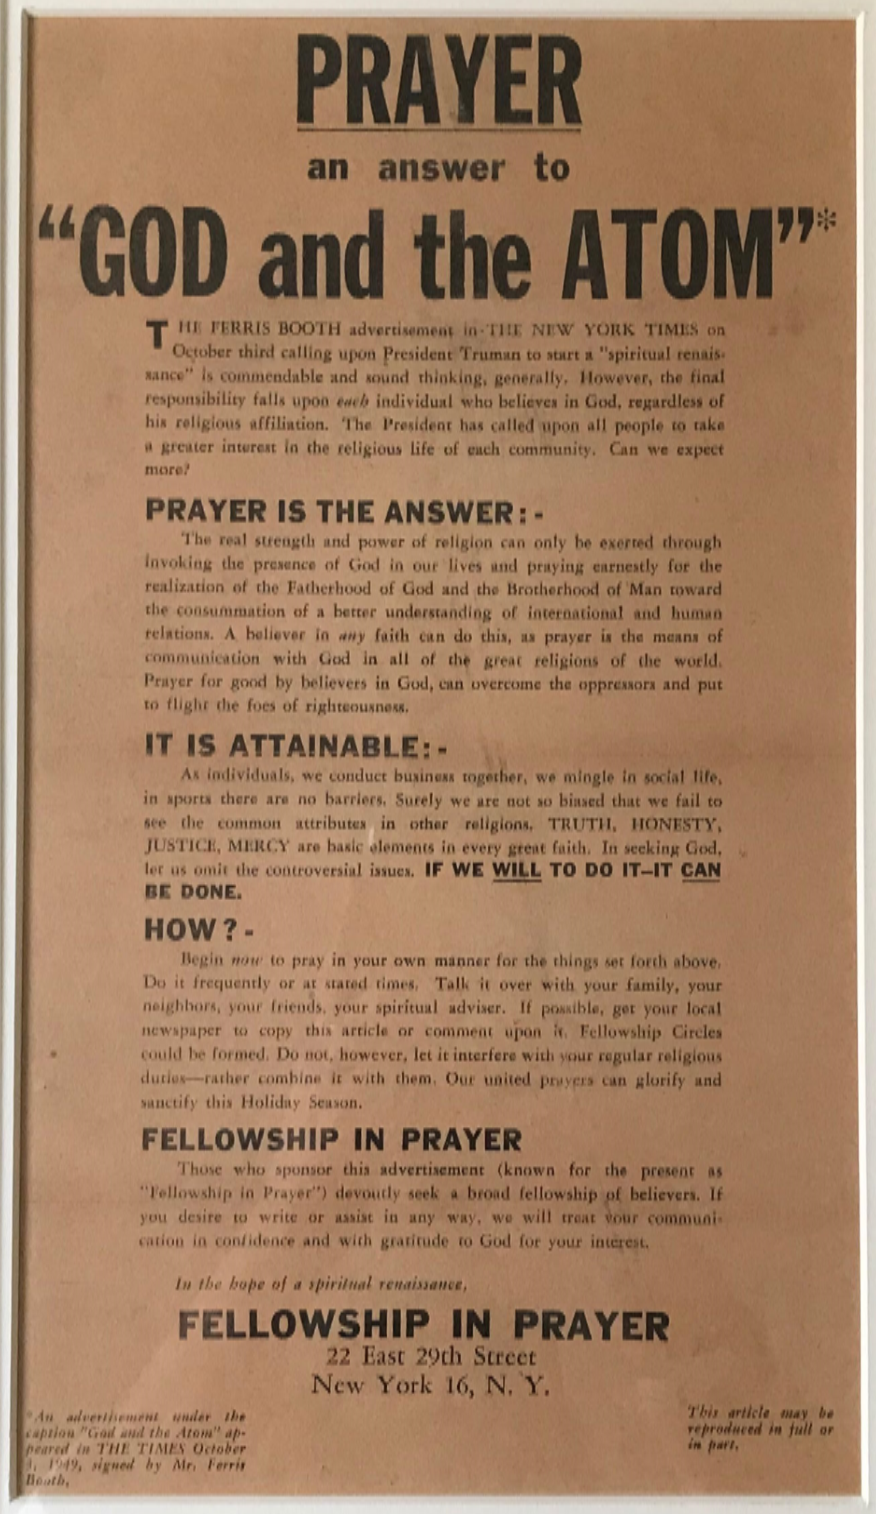 Prayer and the ATOM